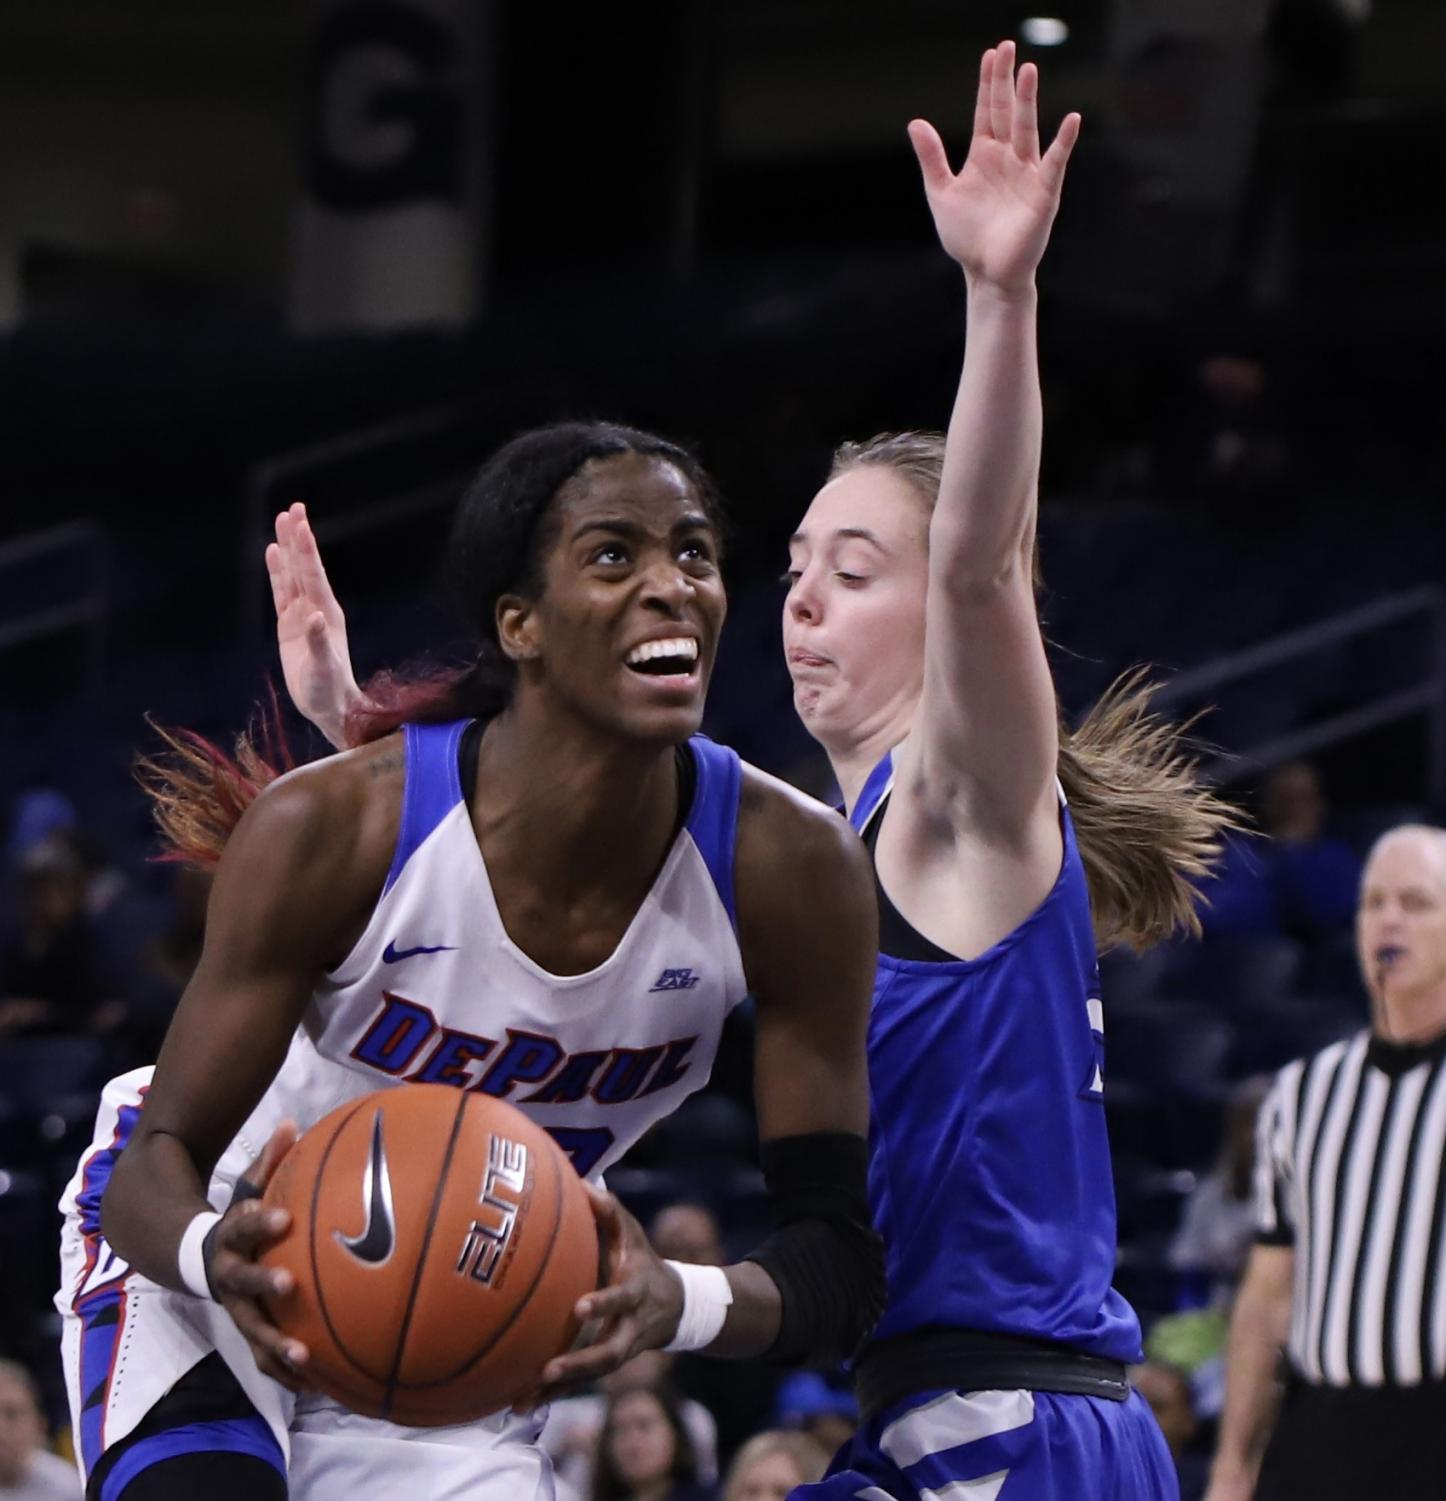 DePaul+forward+Chante+Stonewall+pushes+towards+the+basket+Monday+night+at+Wintrust+Arena.+Stonewall+finished+with+12+points+and+four+rebounds.+Alexa+Sandler+%7C+The+DePaulia